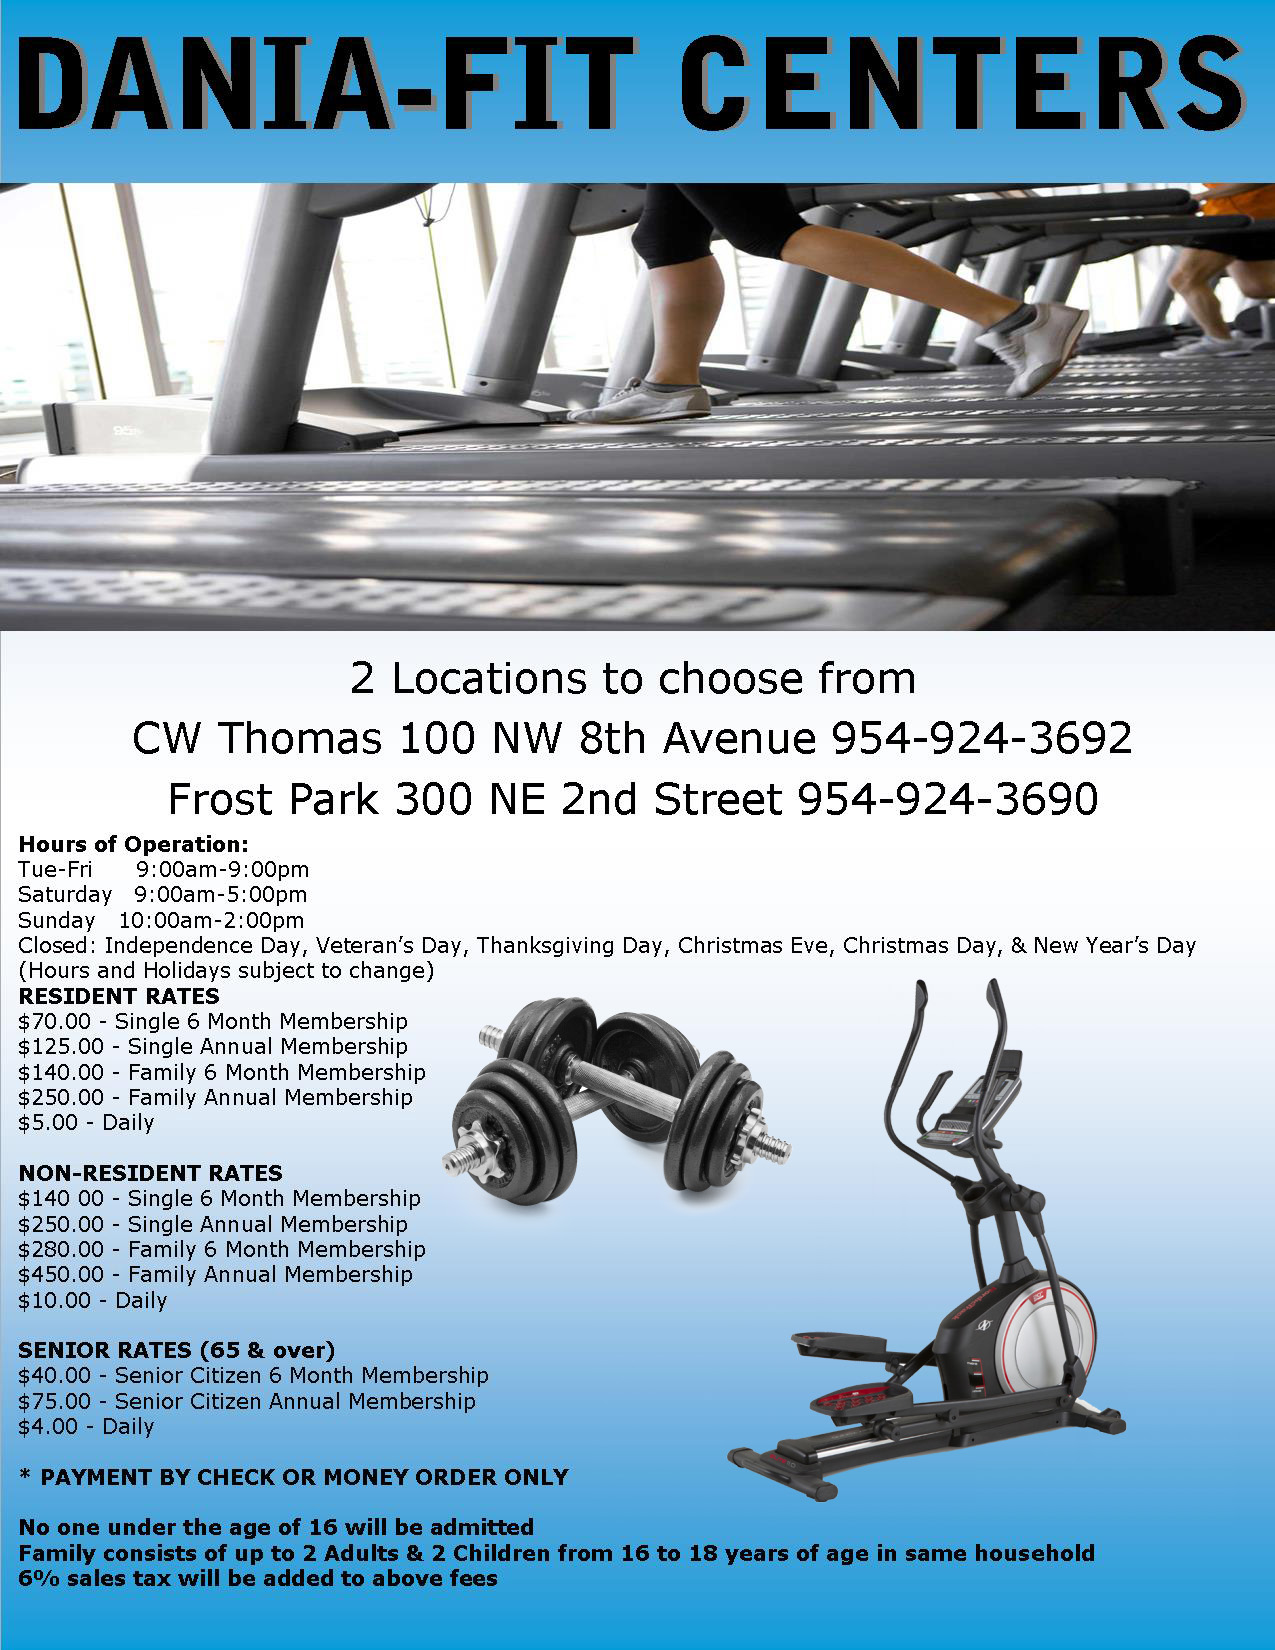 Dania FIT Centers at C.W. Thomas and Frost Park